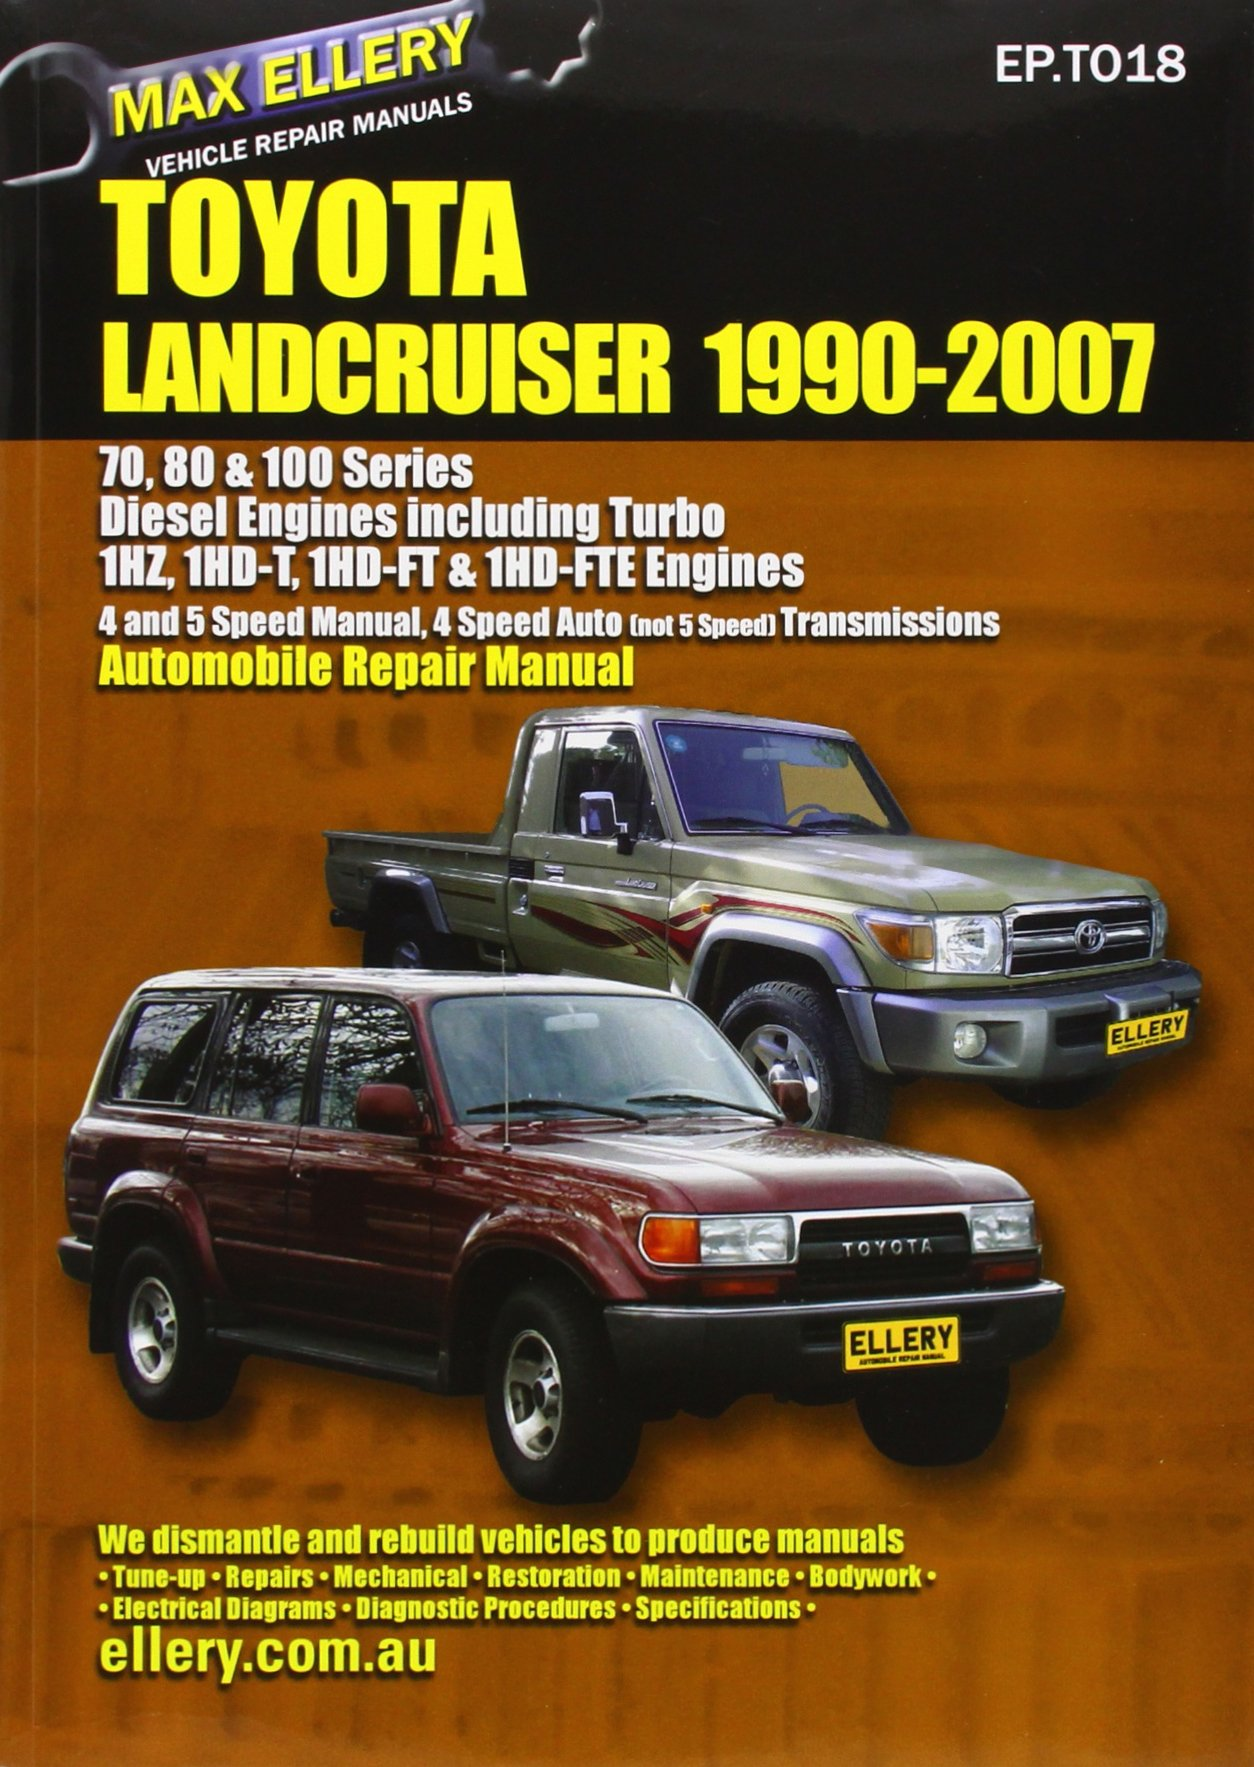 Toyota Landcruiser 1990-2007 Diesel Engines Including Turbo: 70's, 80's,  and 100's Series: Automobile Repair Manual: Amazon.co.uk: Max Ellery: ...